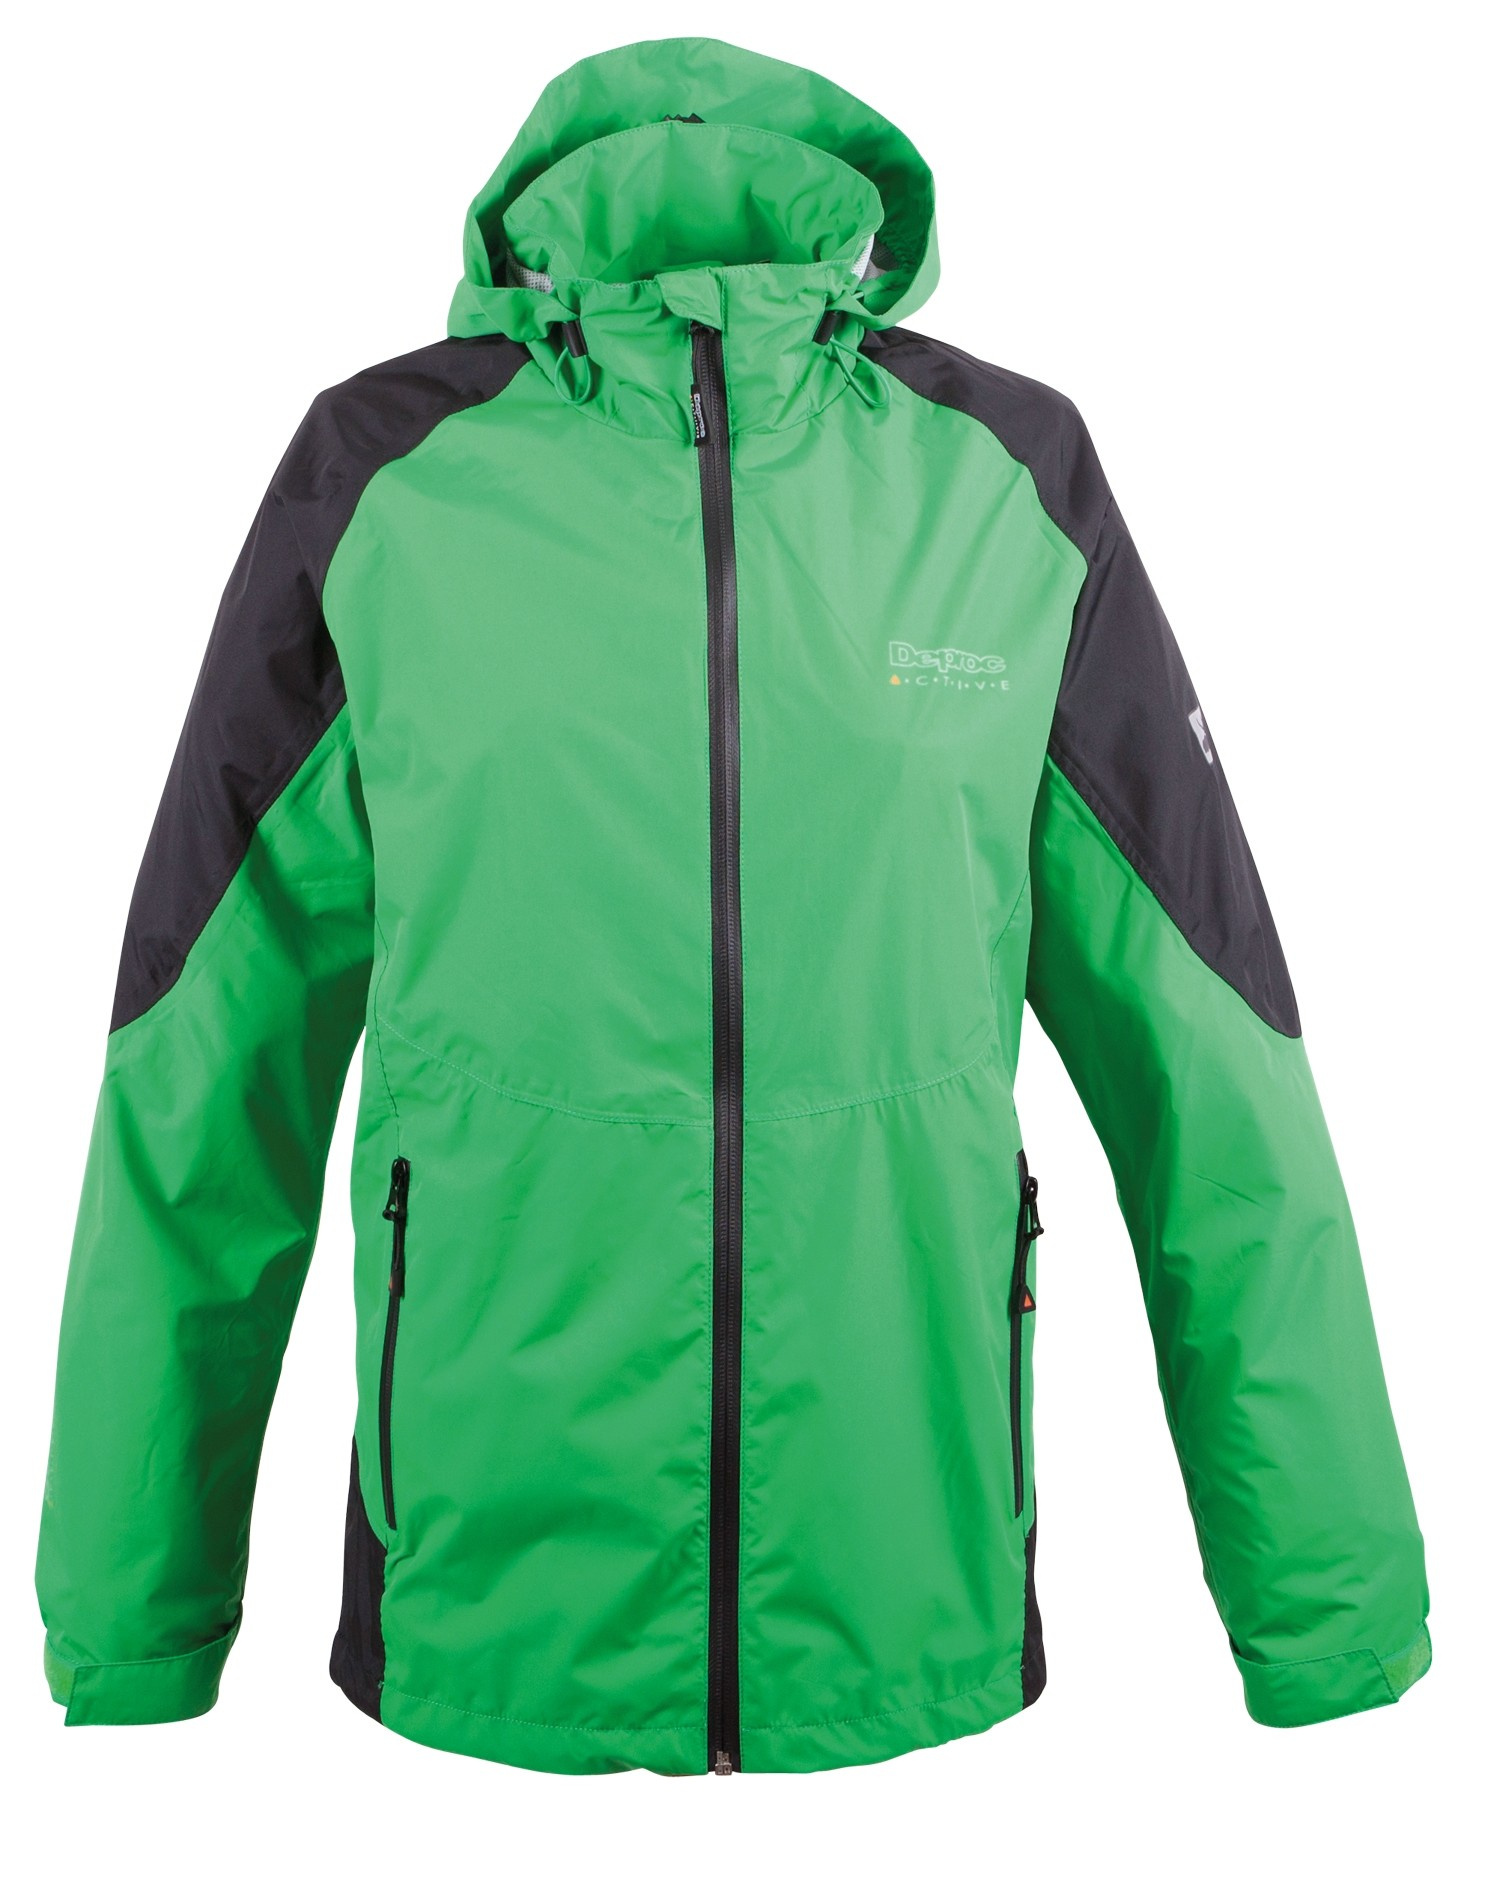 Outdoorjacken damen gr 50